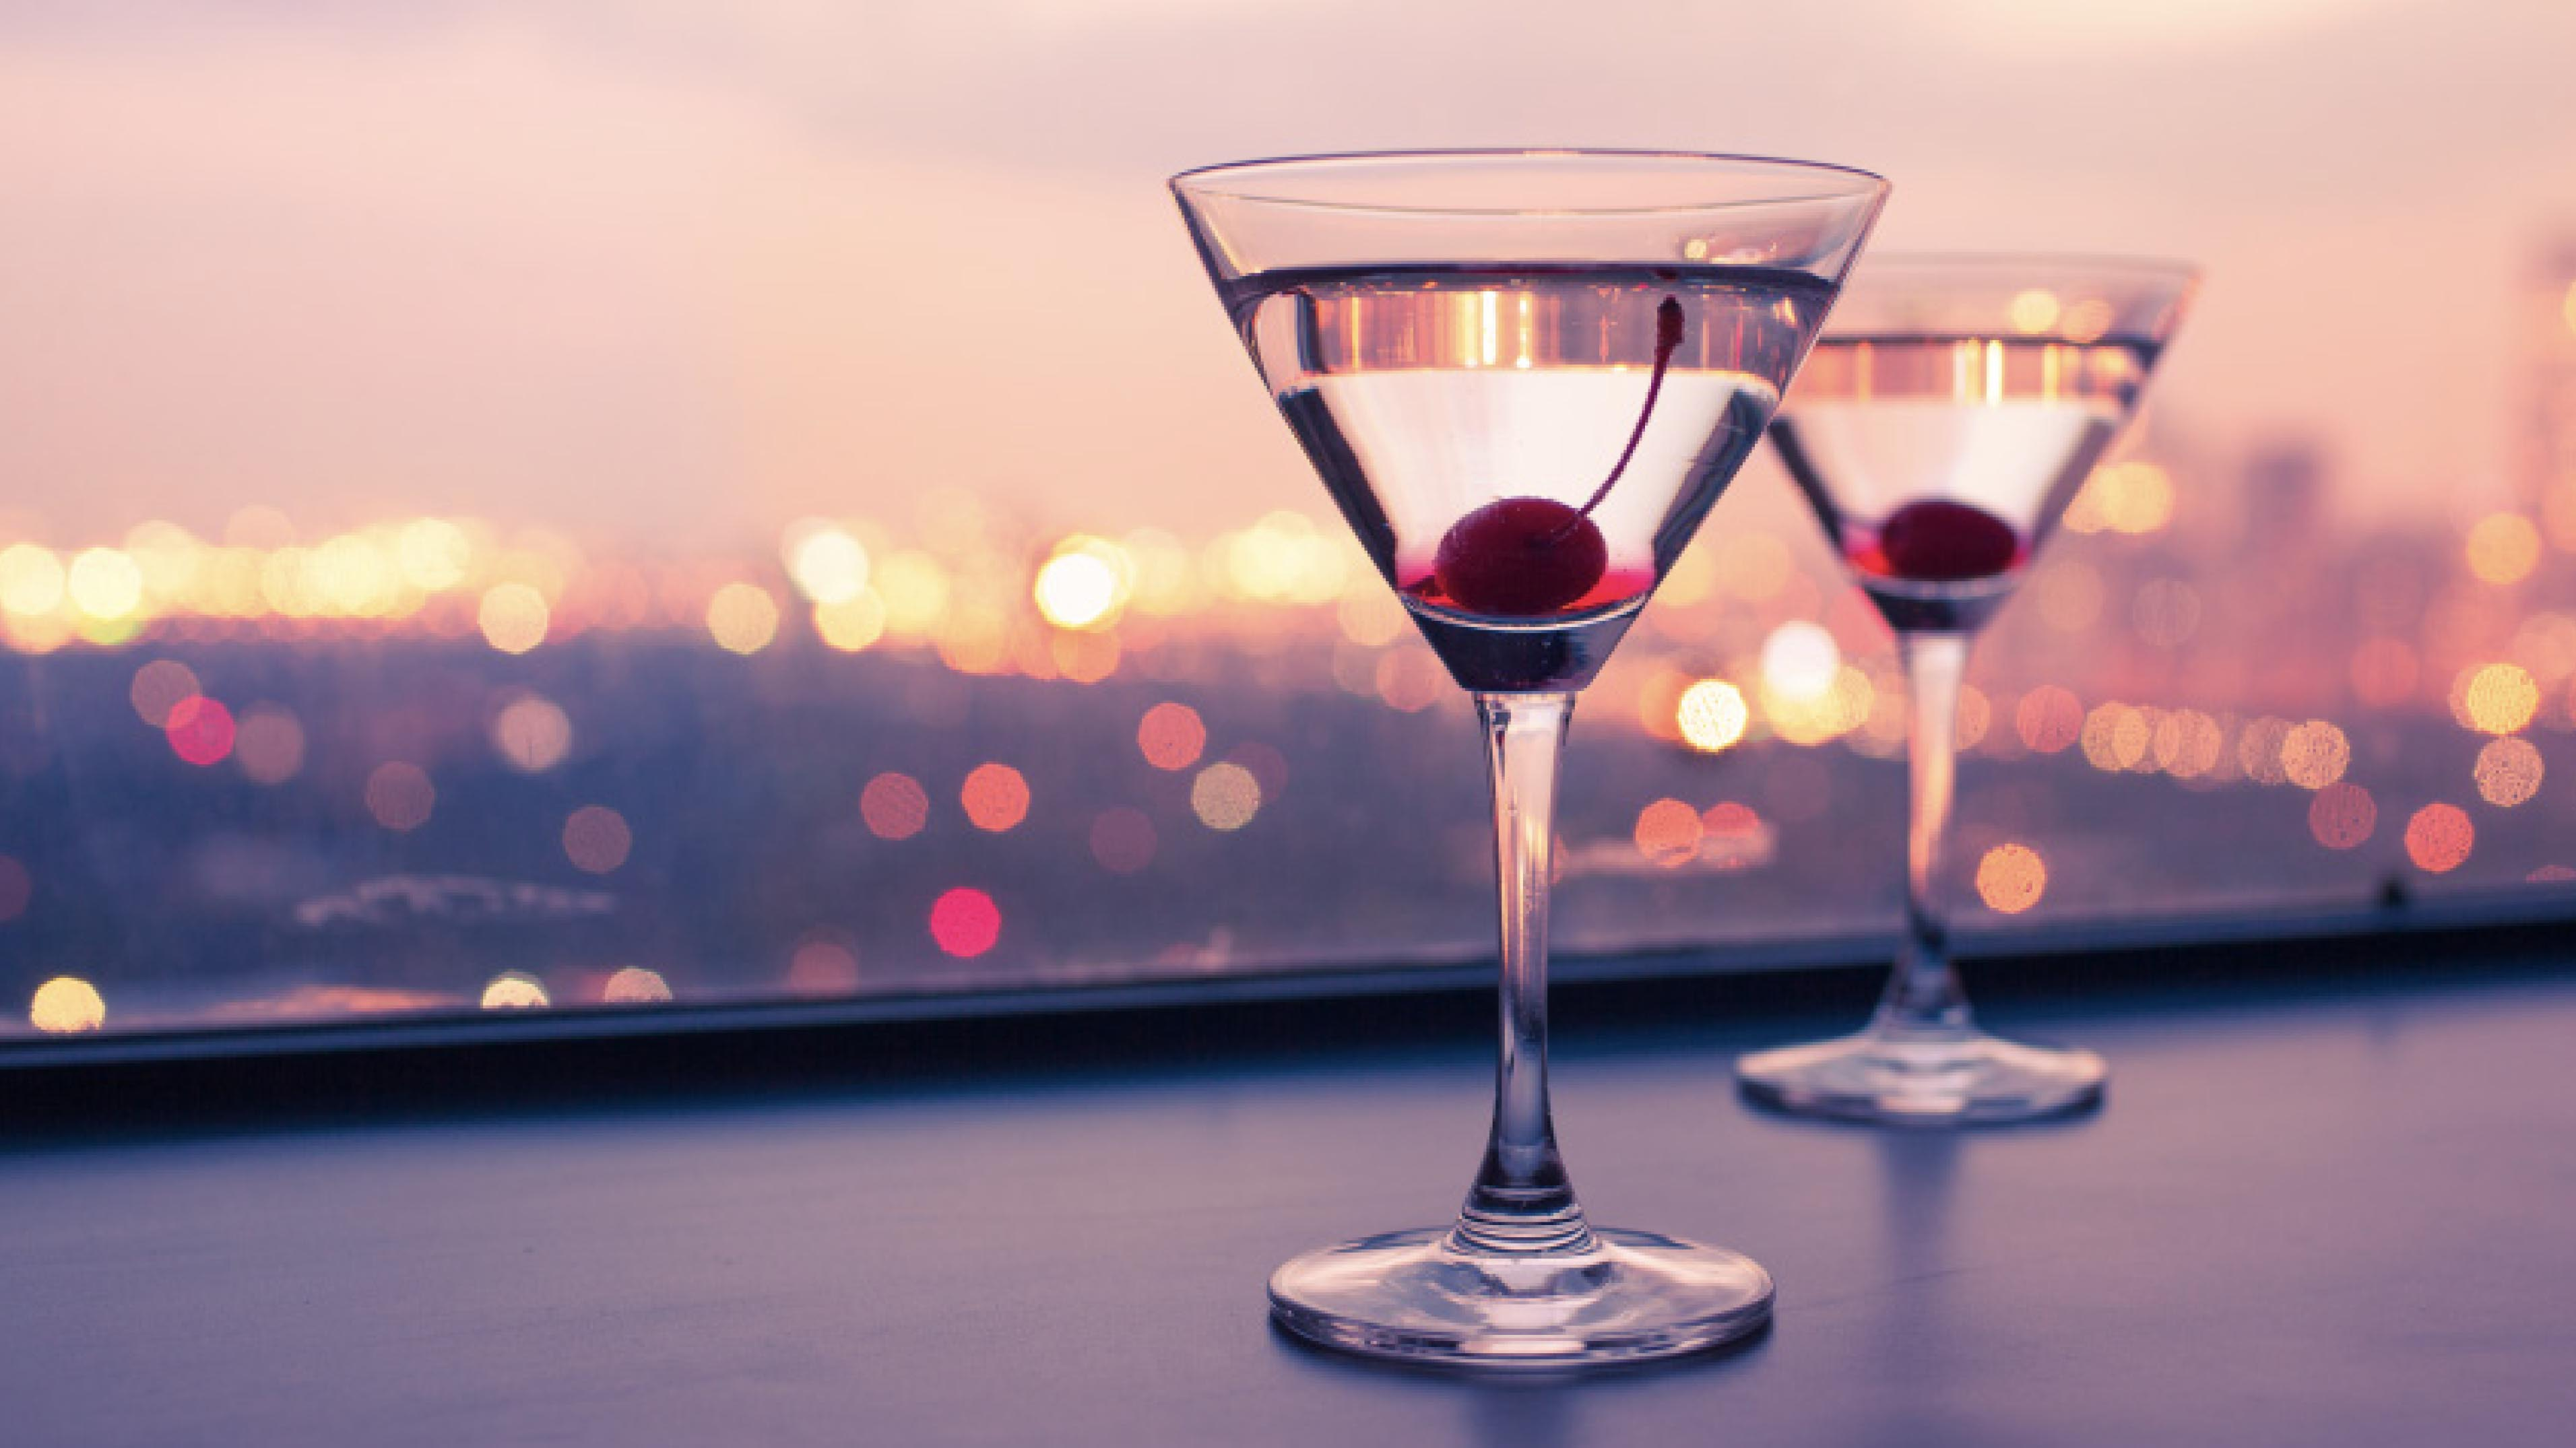 Two Drinks on a Rooftop Edge, in front of Blurred City Lights